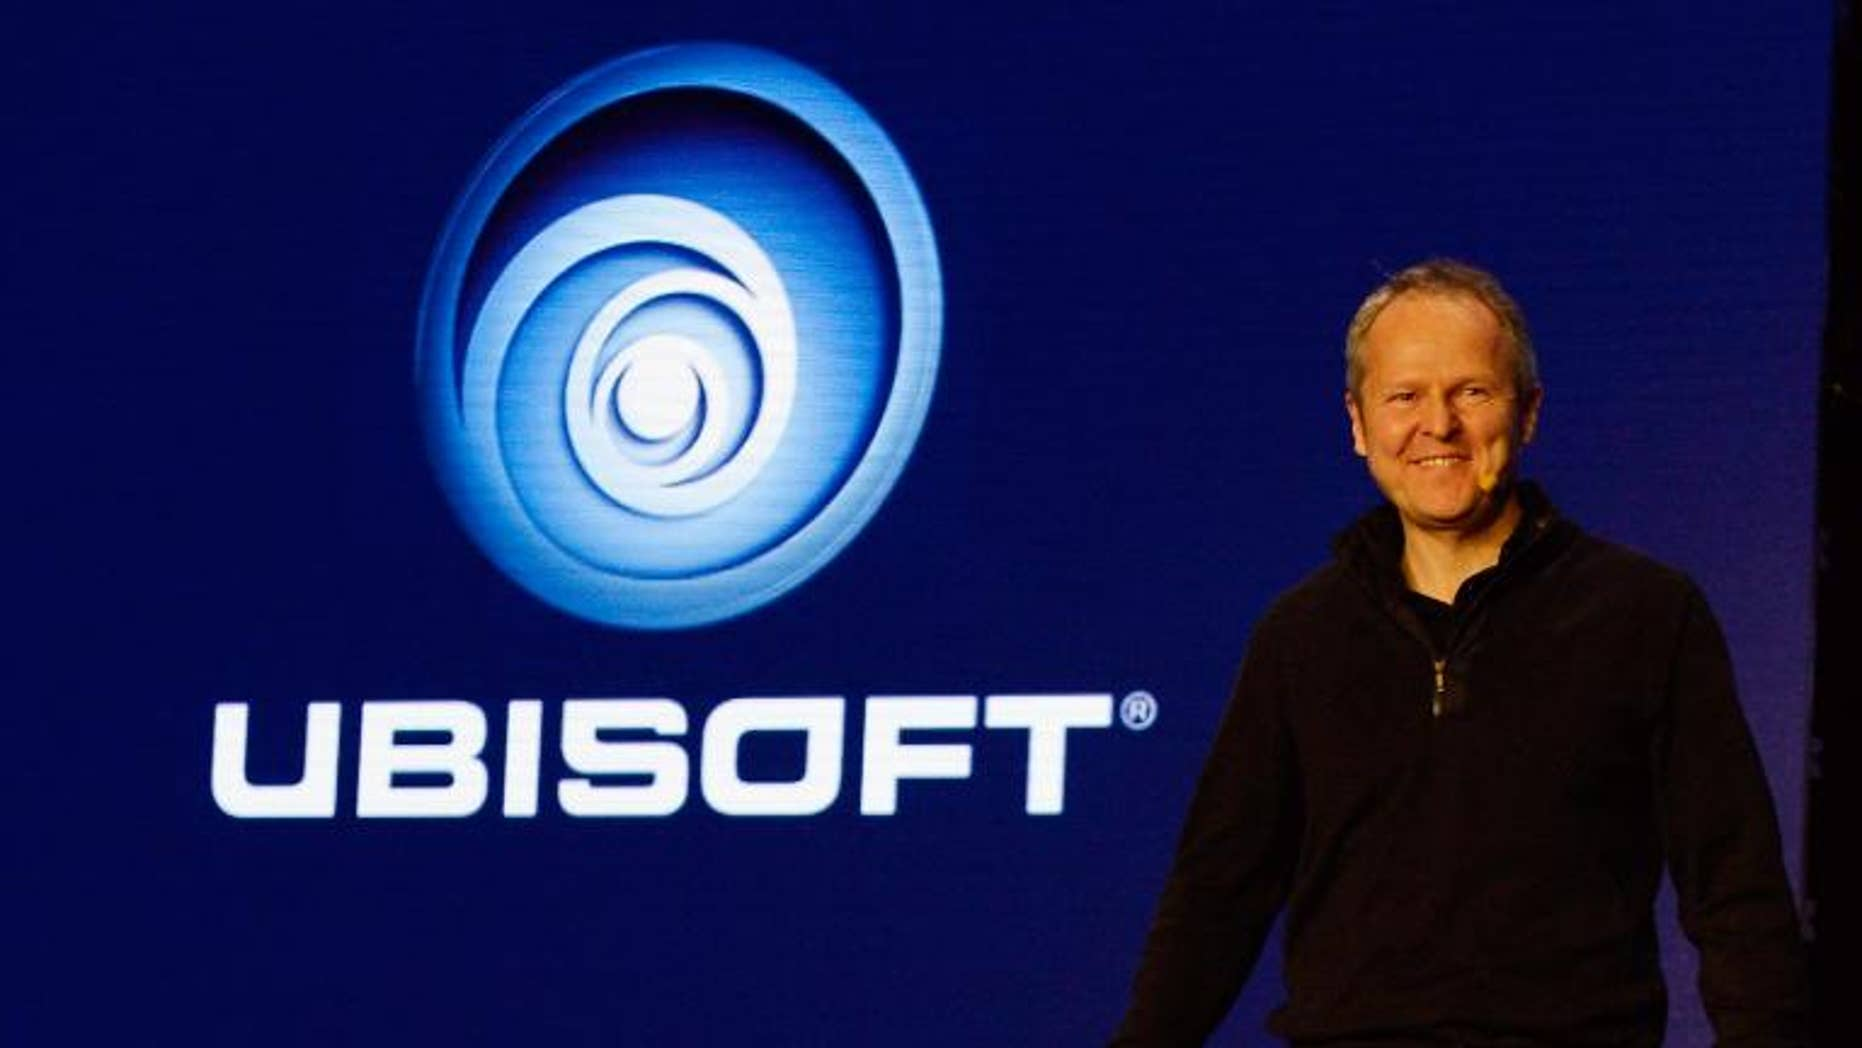 Yves Guillemot, co-founder and CEO of Ubisoft, speaks on June 10, 2013 in Los Angeles, California.